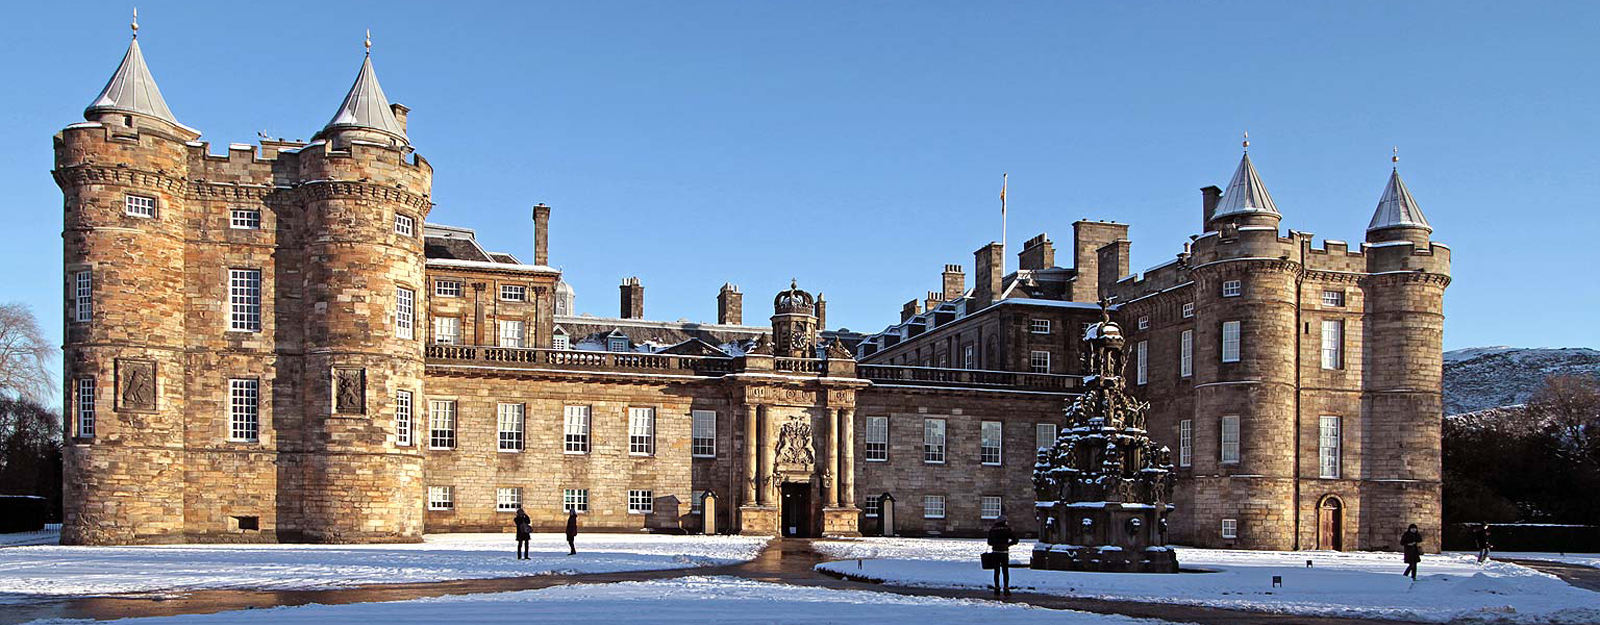 Palace of Holyroodhouse in the snow